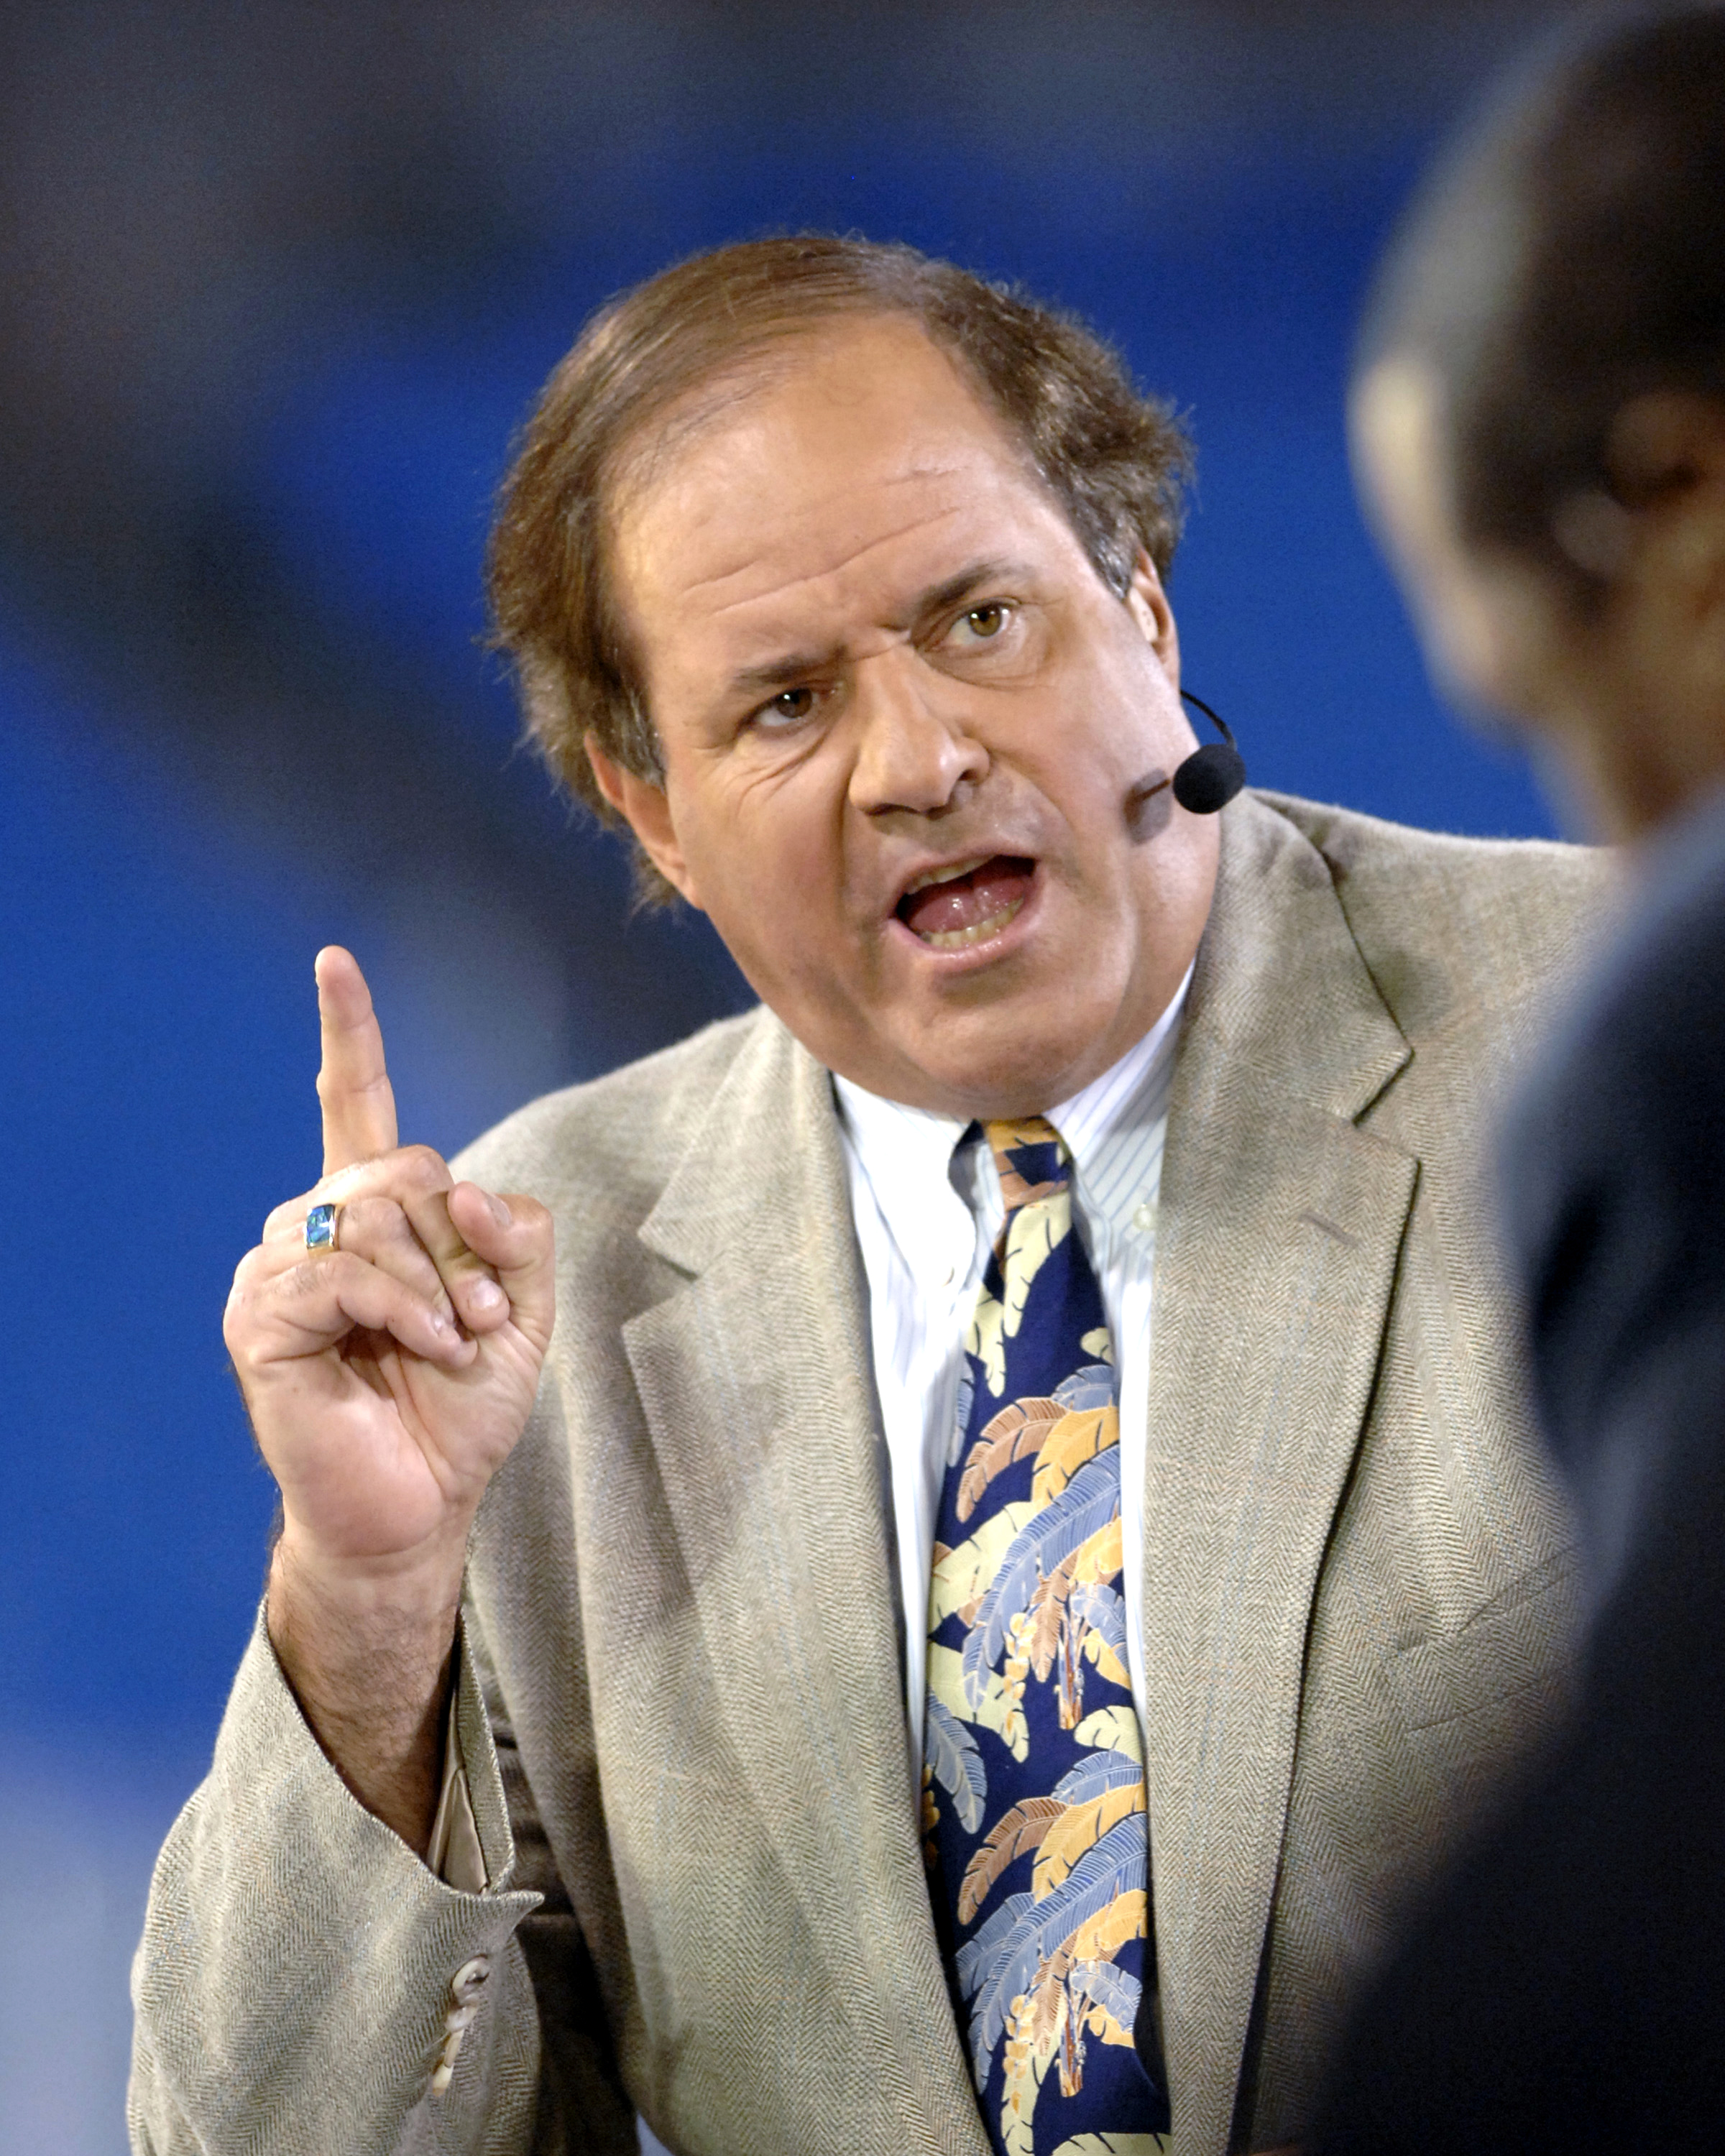 ESPN commentator Chris Berman on Monday Night Football Nov. 13, 2006 as the Carolina Panthers host the Tampa Bay Buccaneers  in Charlotte.  The Panthers won 24 - 10. (Photo by A. Messerschmidt/Getty Images)